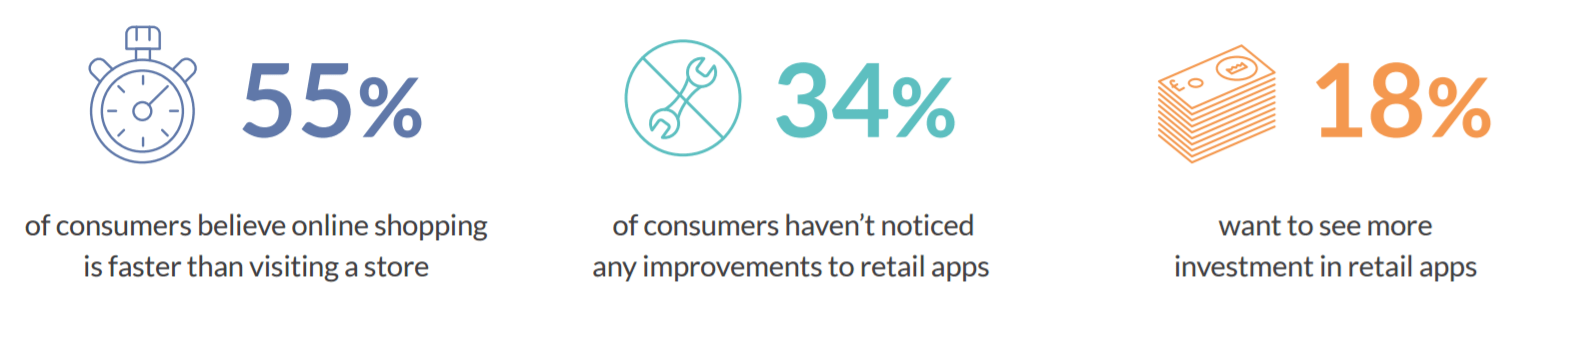 Shoppers left unimpressed by majority of retail apps TechNative